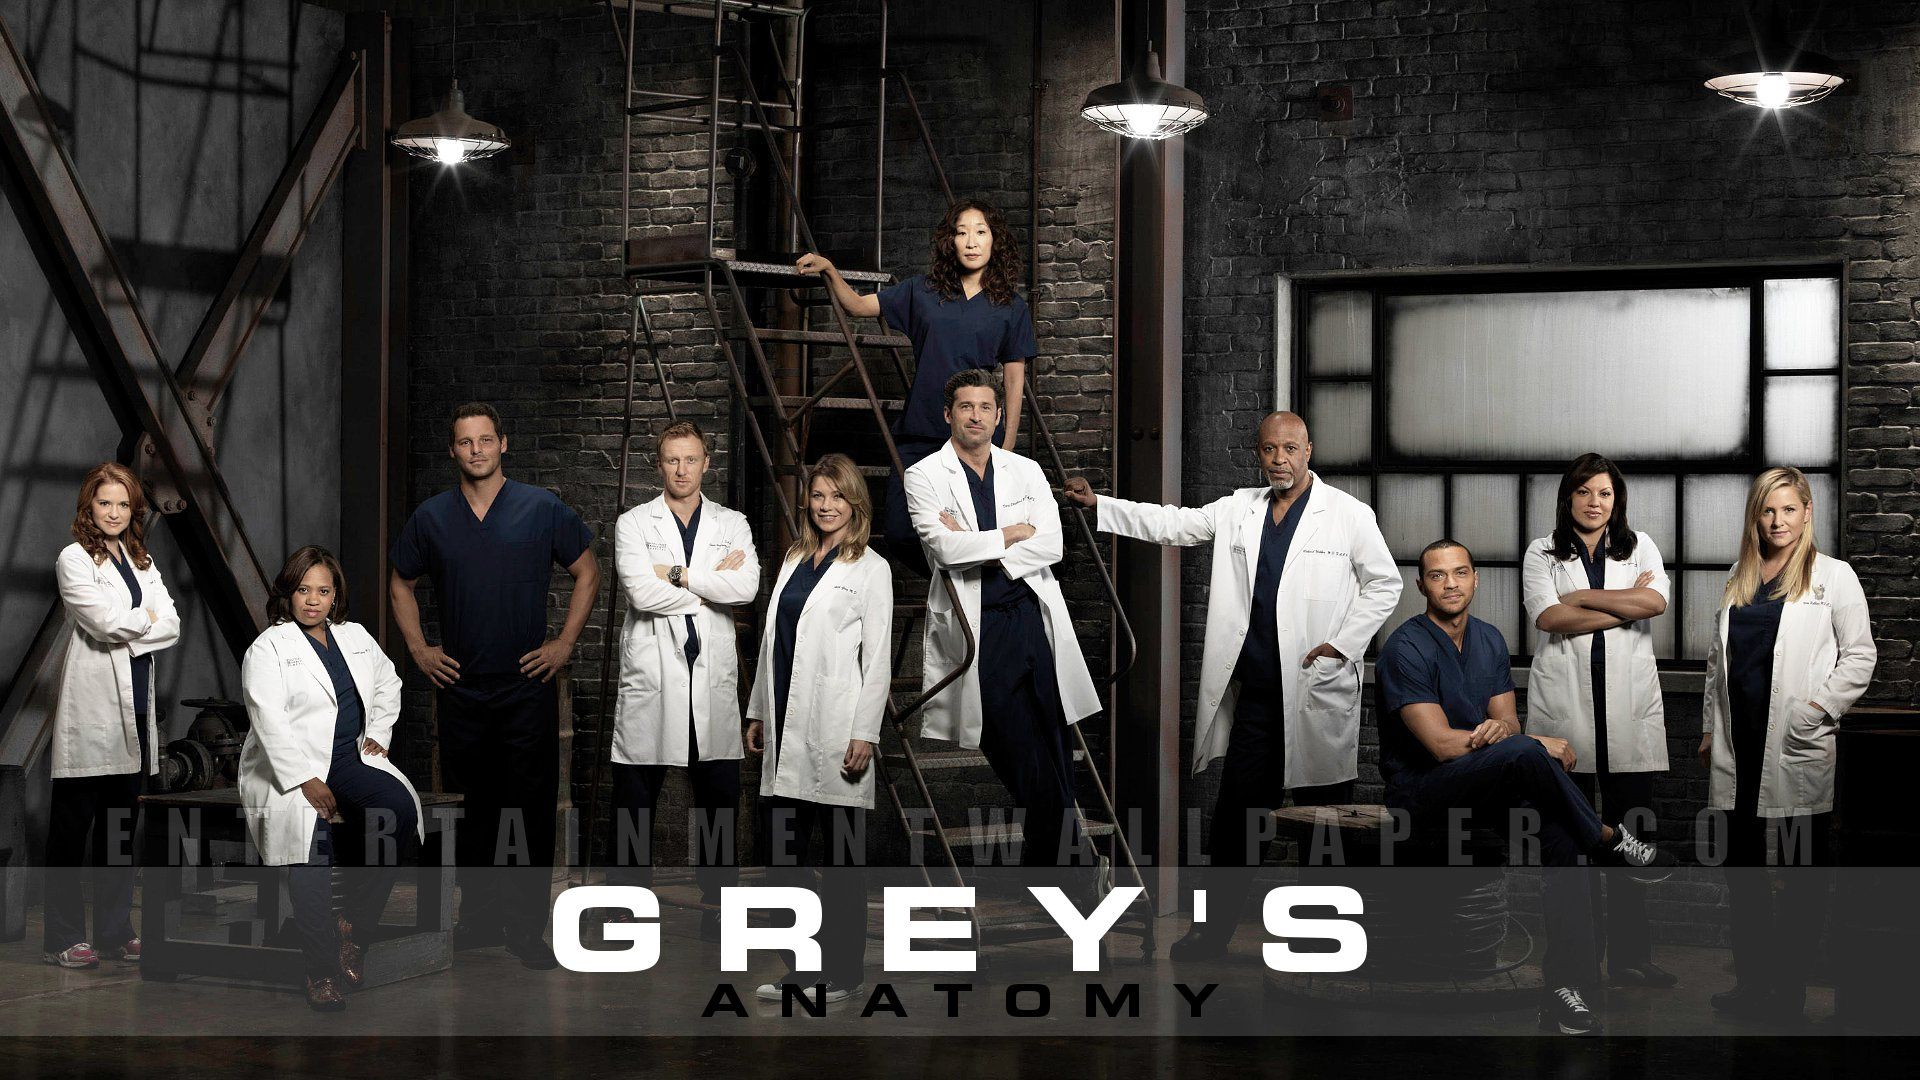 Grey\'s Anatomy Wallpaper - #20041804 (1920x1080) | Desktop ...